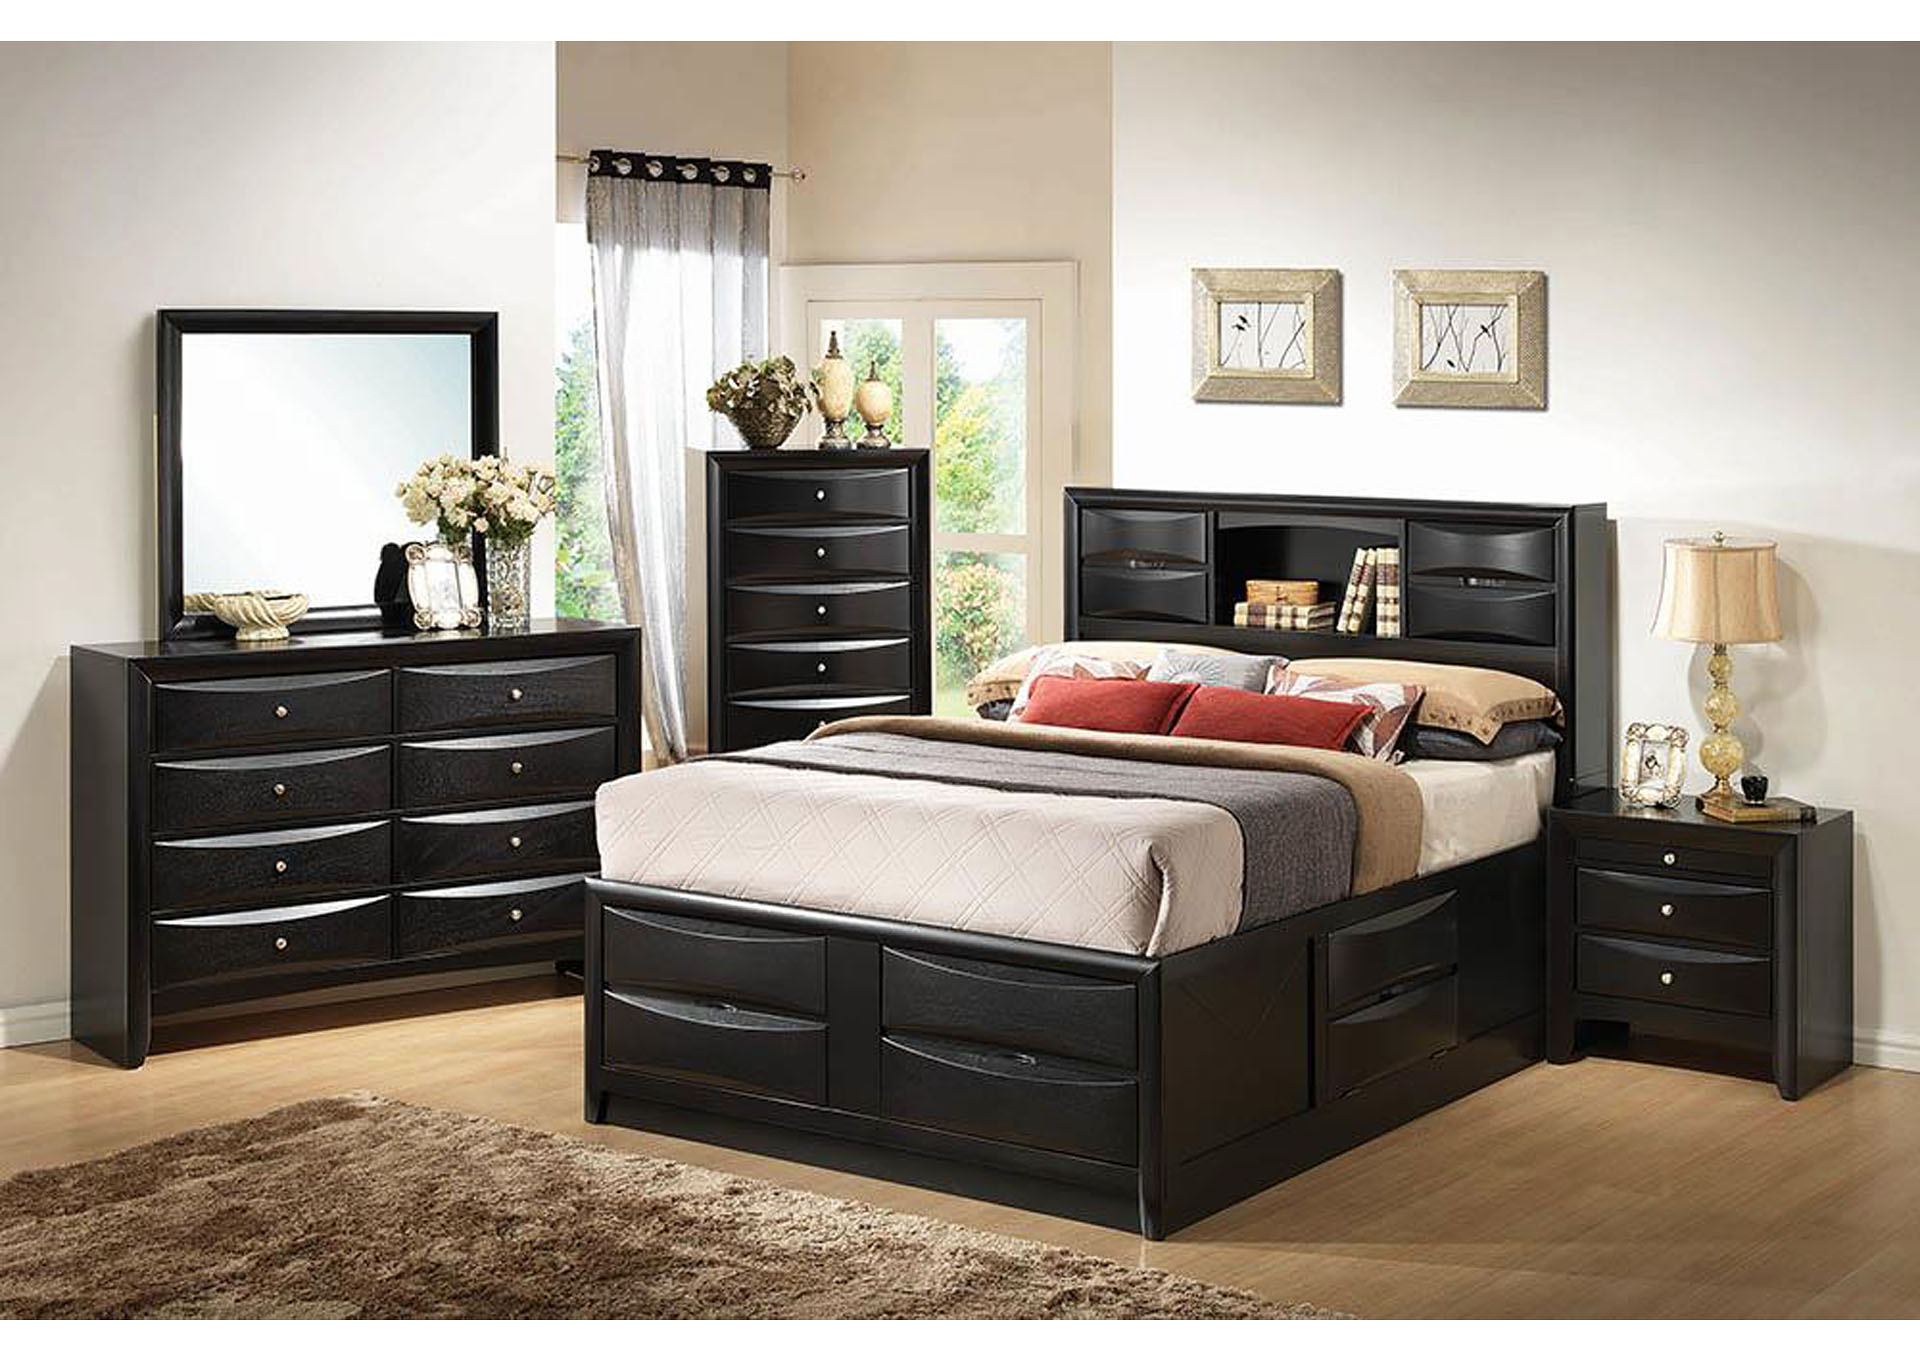 Briana Transitional Black Queen Bed,Coaster Furniture